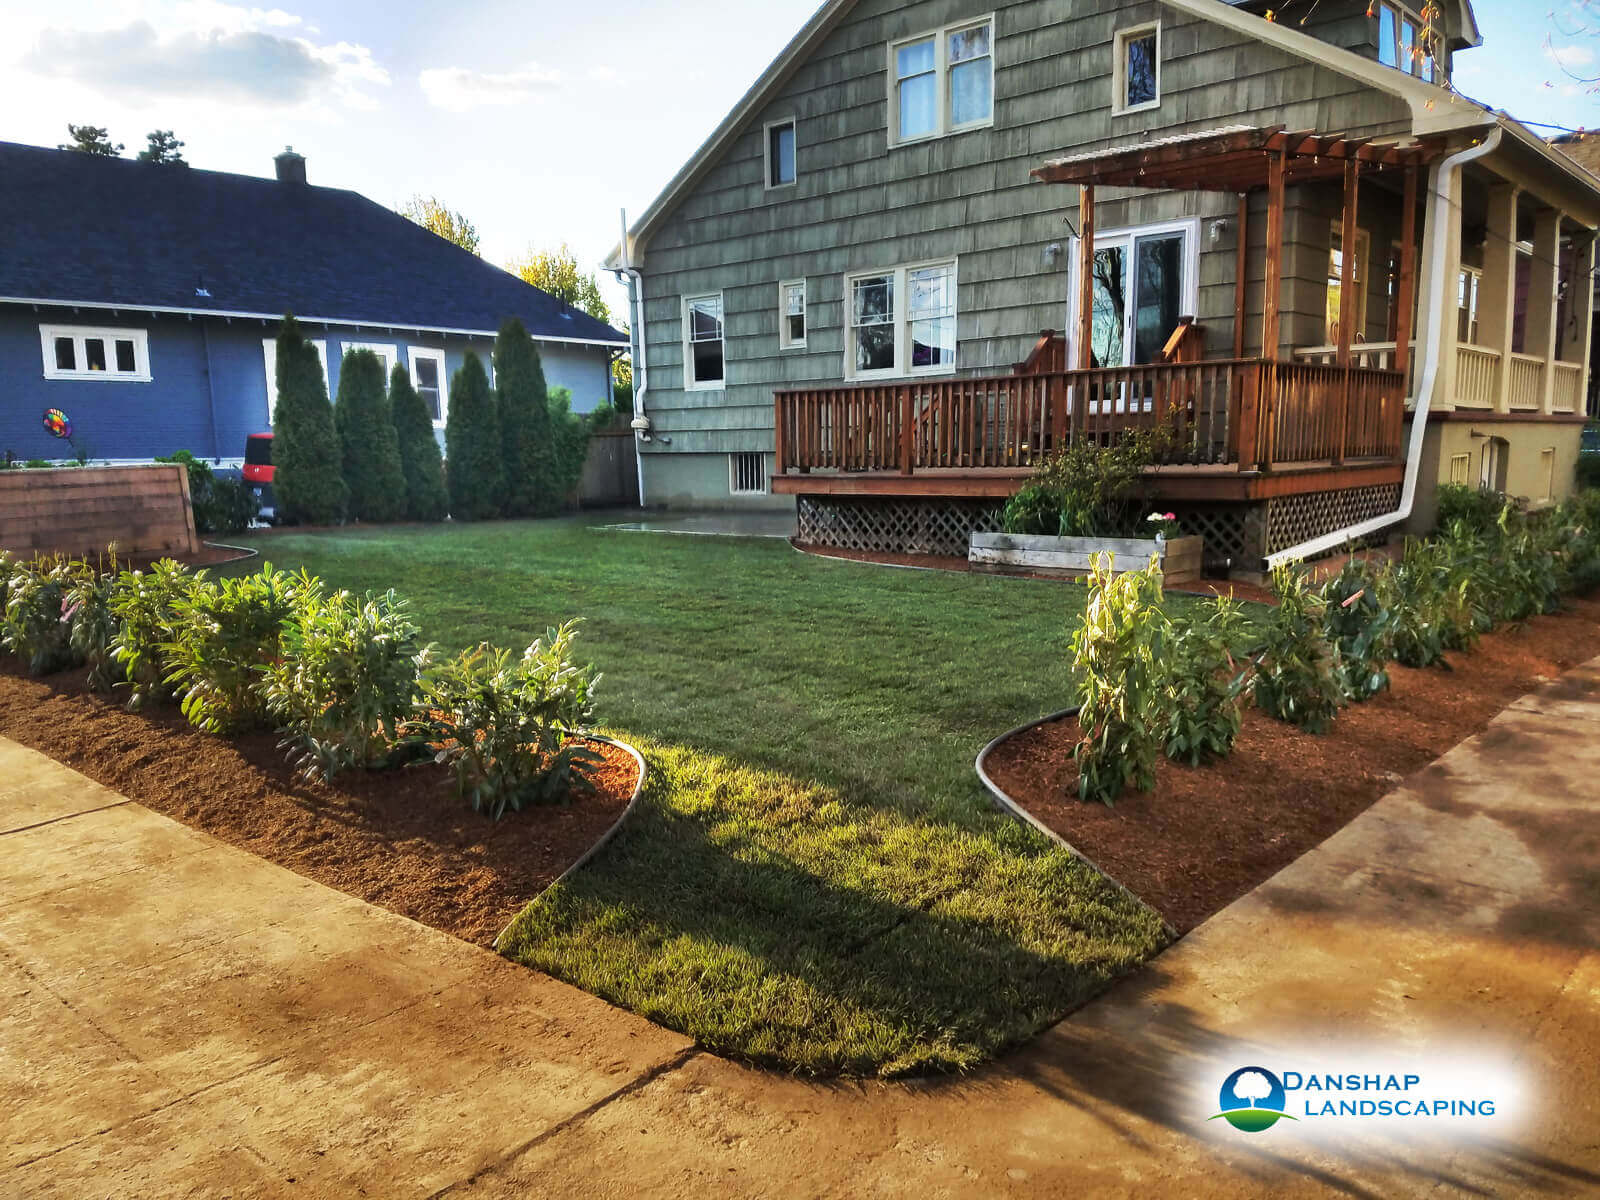 Sod-Replacement-Danshaplandscape-Gallery-50